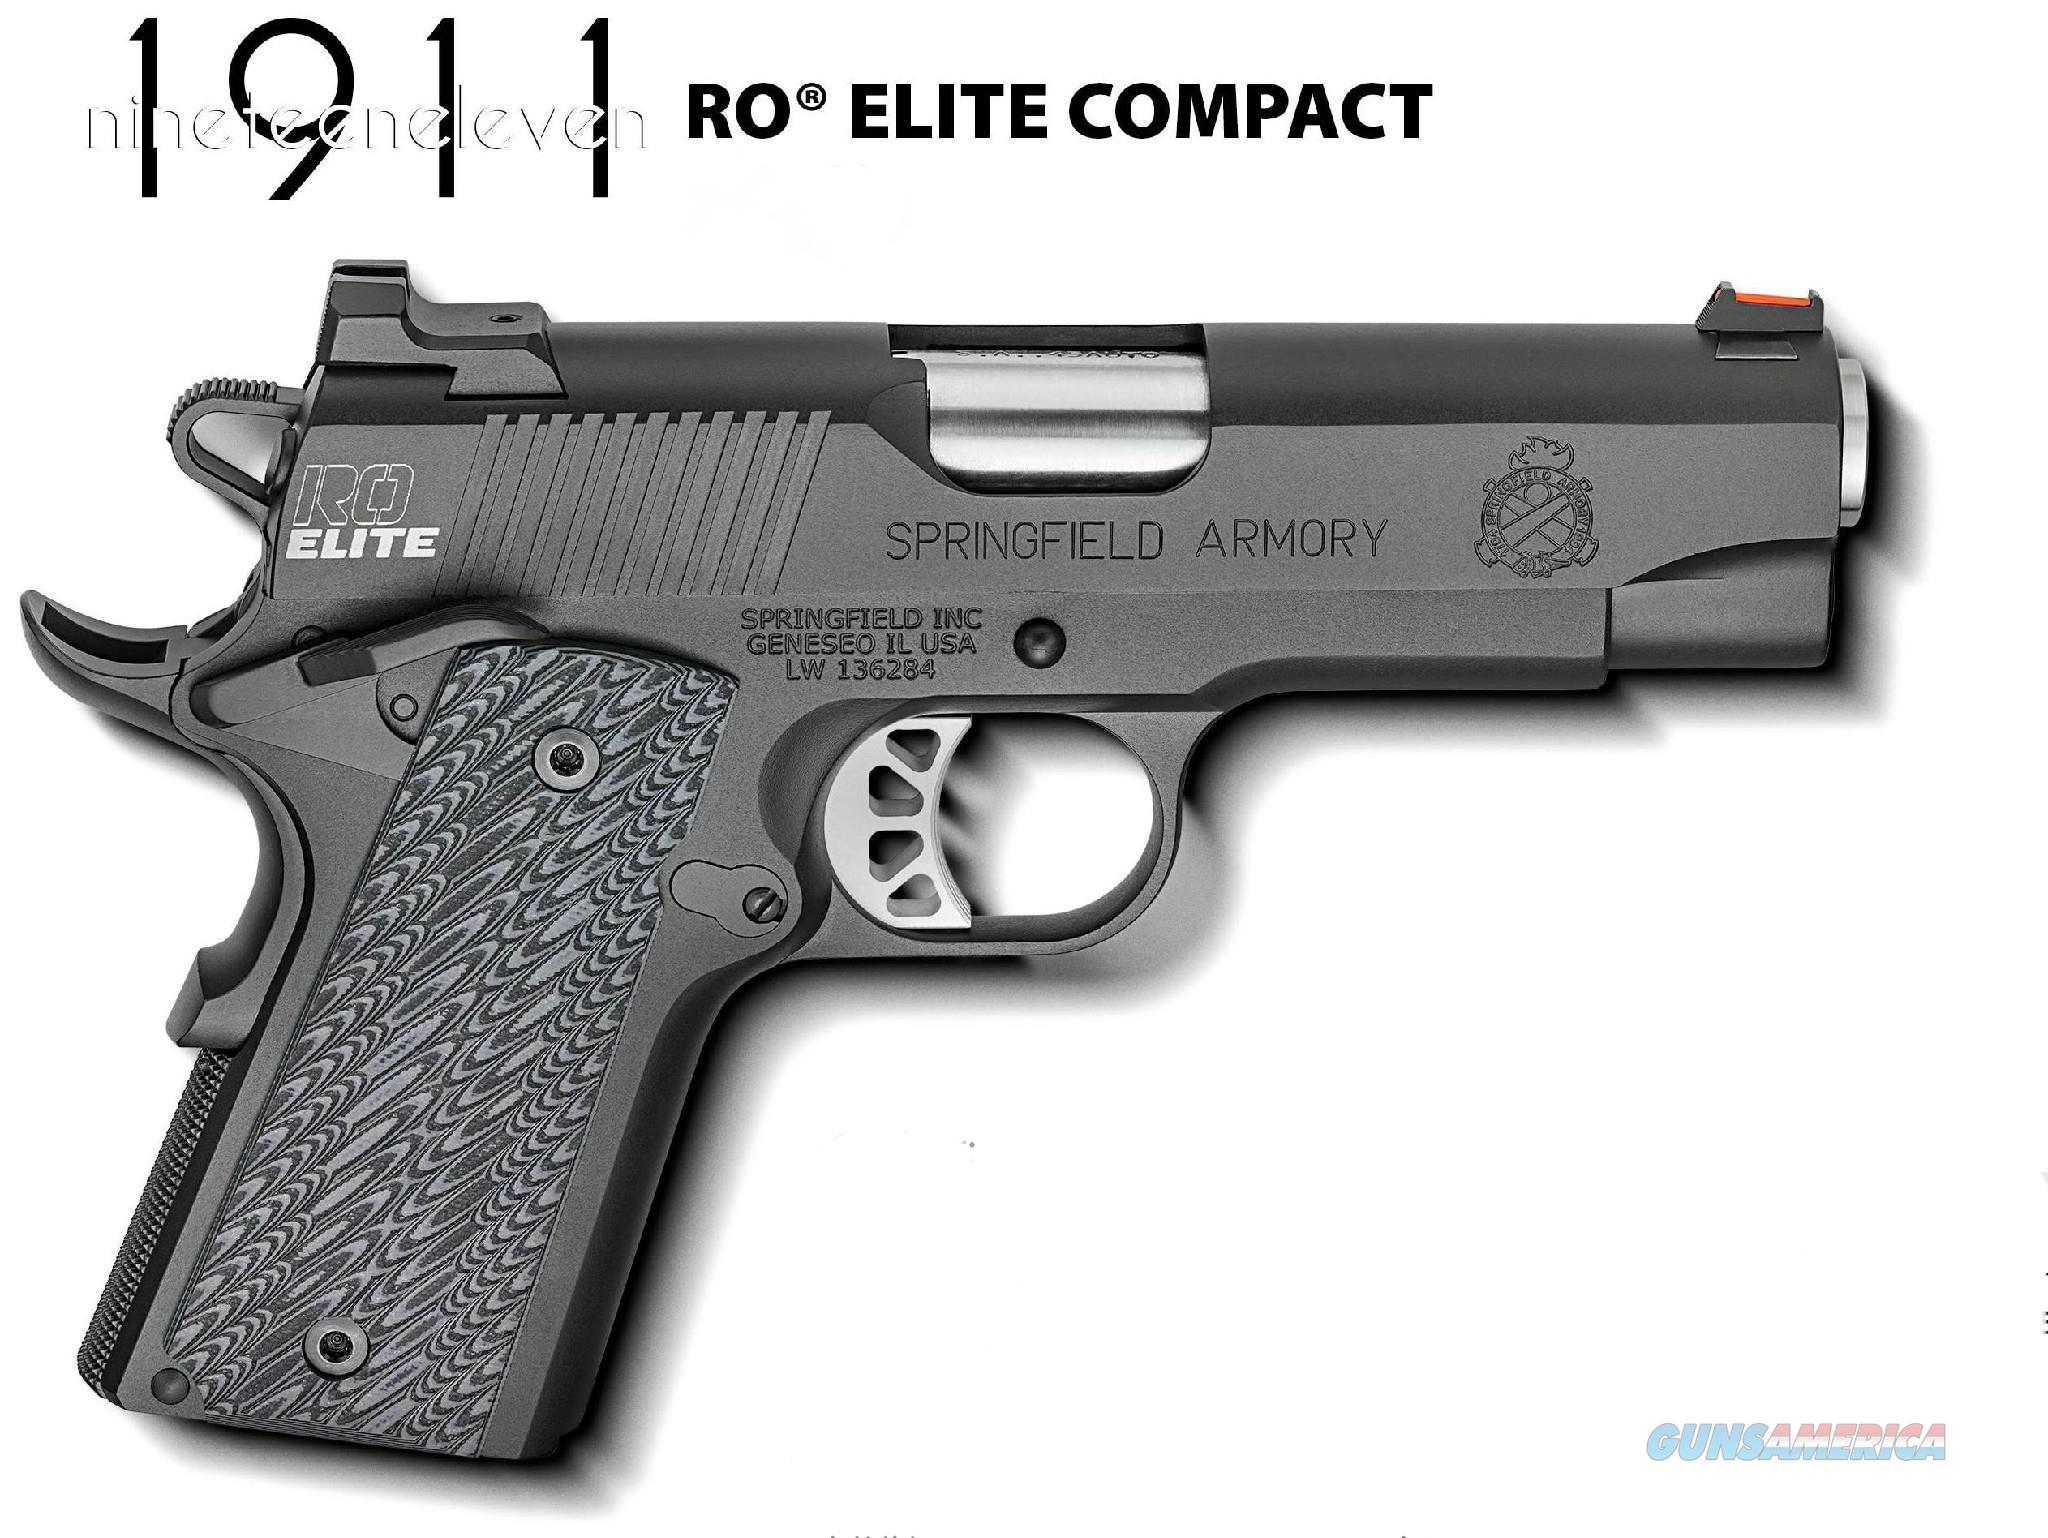 "Springfield 1911 RO Elite Compact 9mm 4"" FO *NEW* PI9125ER  Guns > Pistols > Springfield Armory Pistols > 1911 Type"